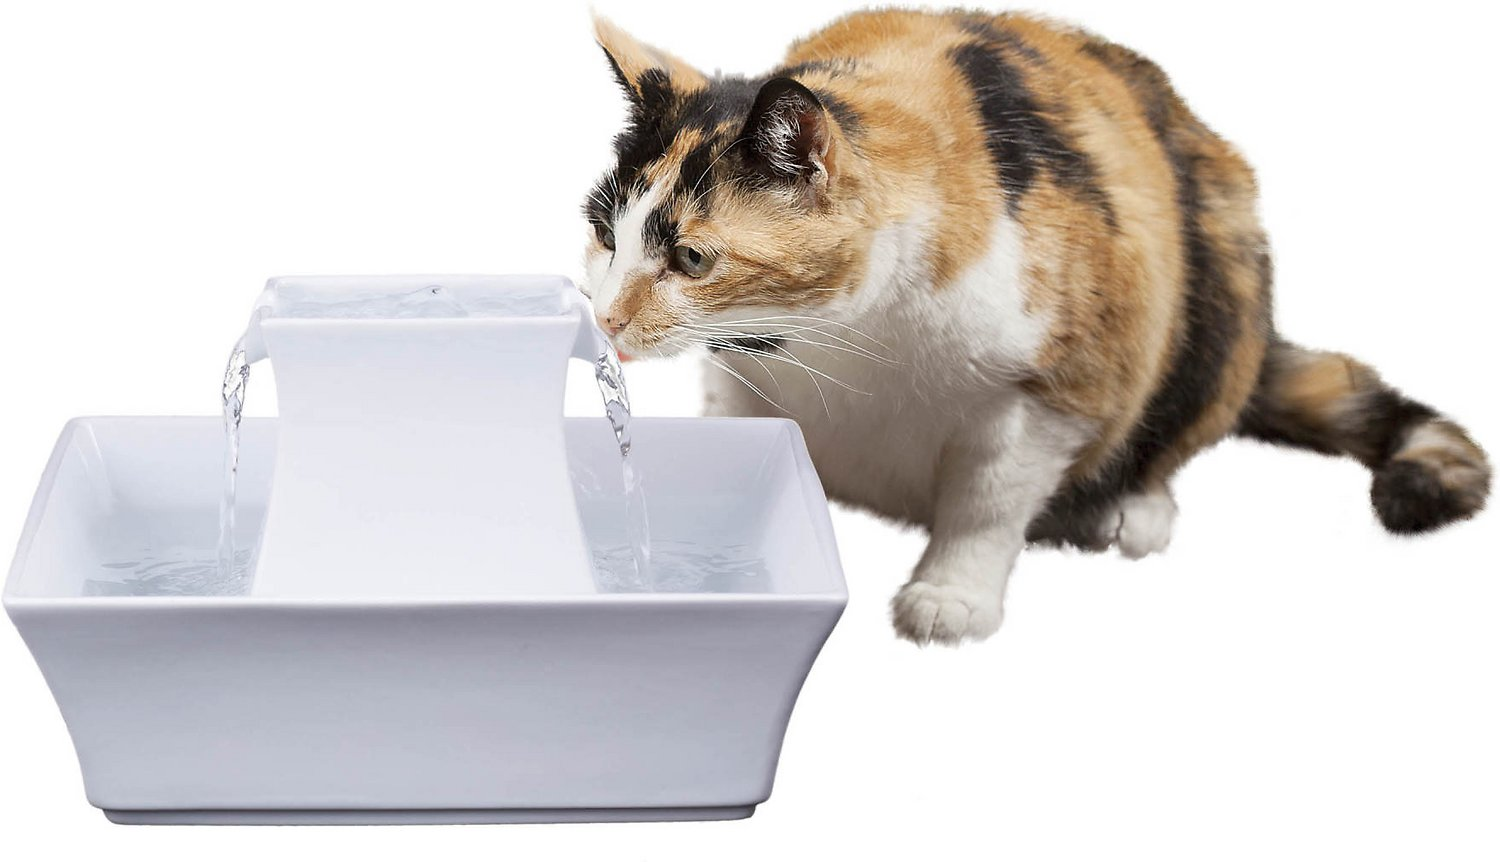 drinkwell pet fountain instructions